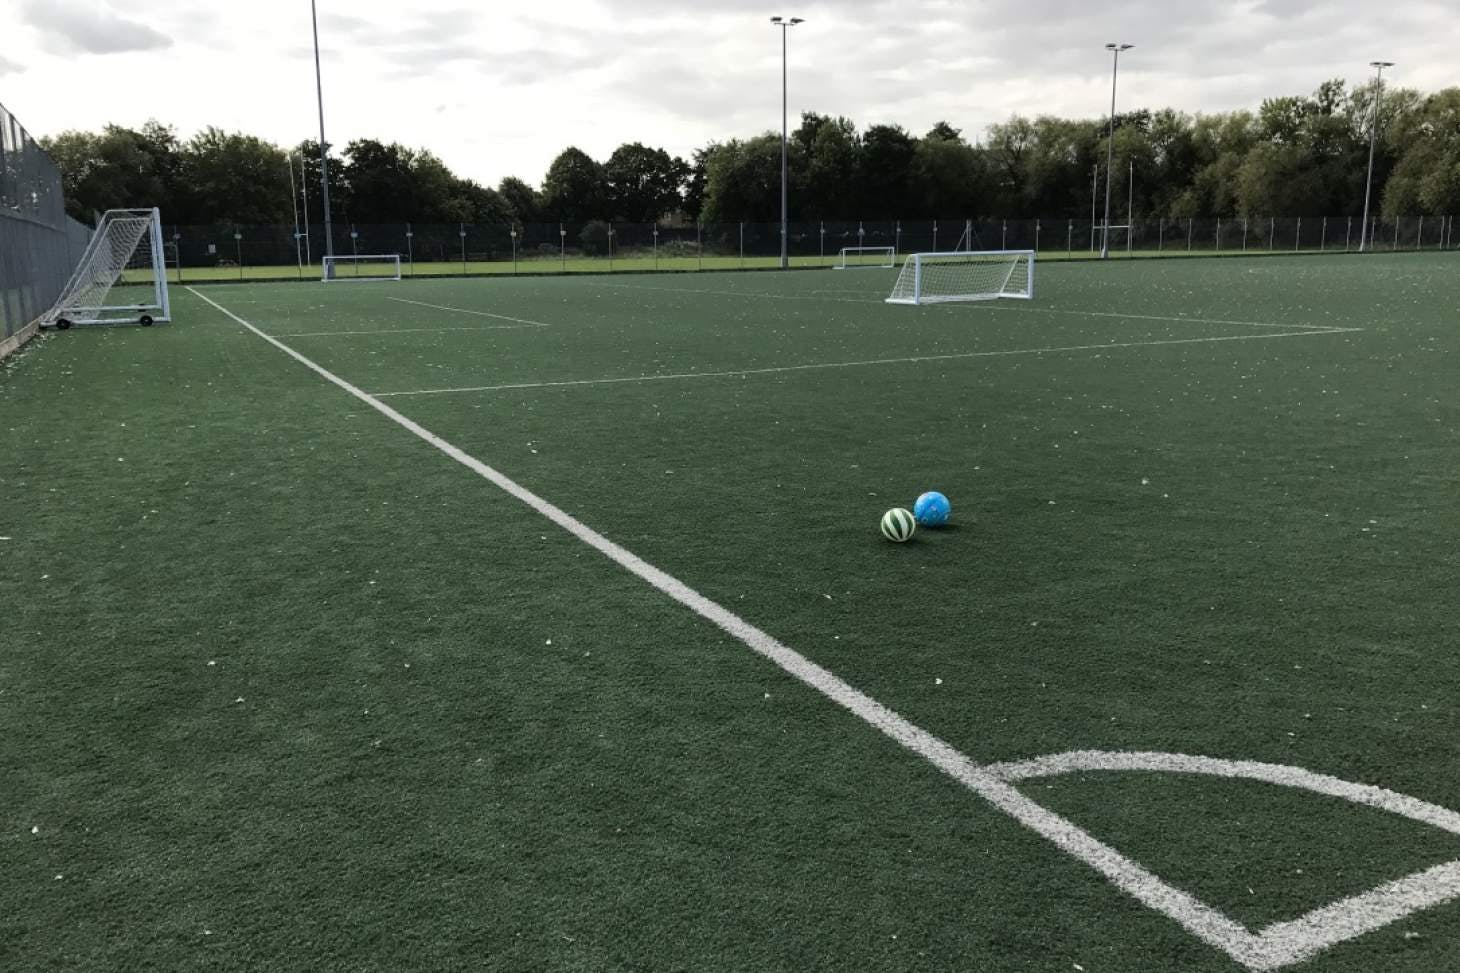 Northampton Leisure & Community Centre 11 a side | 3G Astroturf football pitch